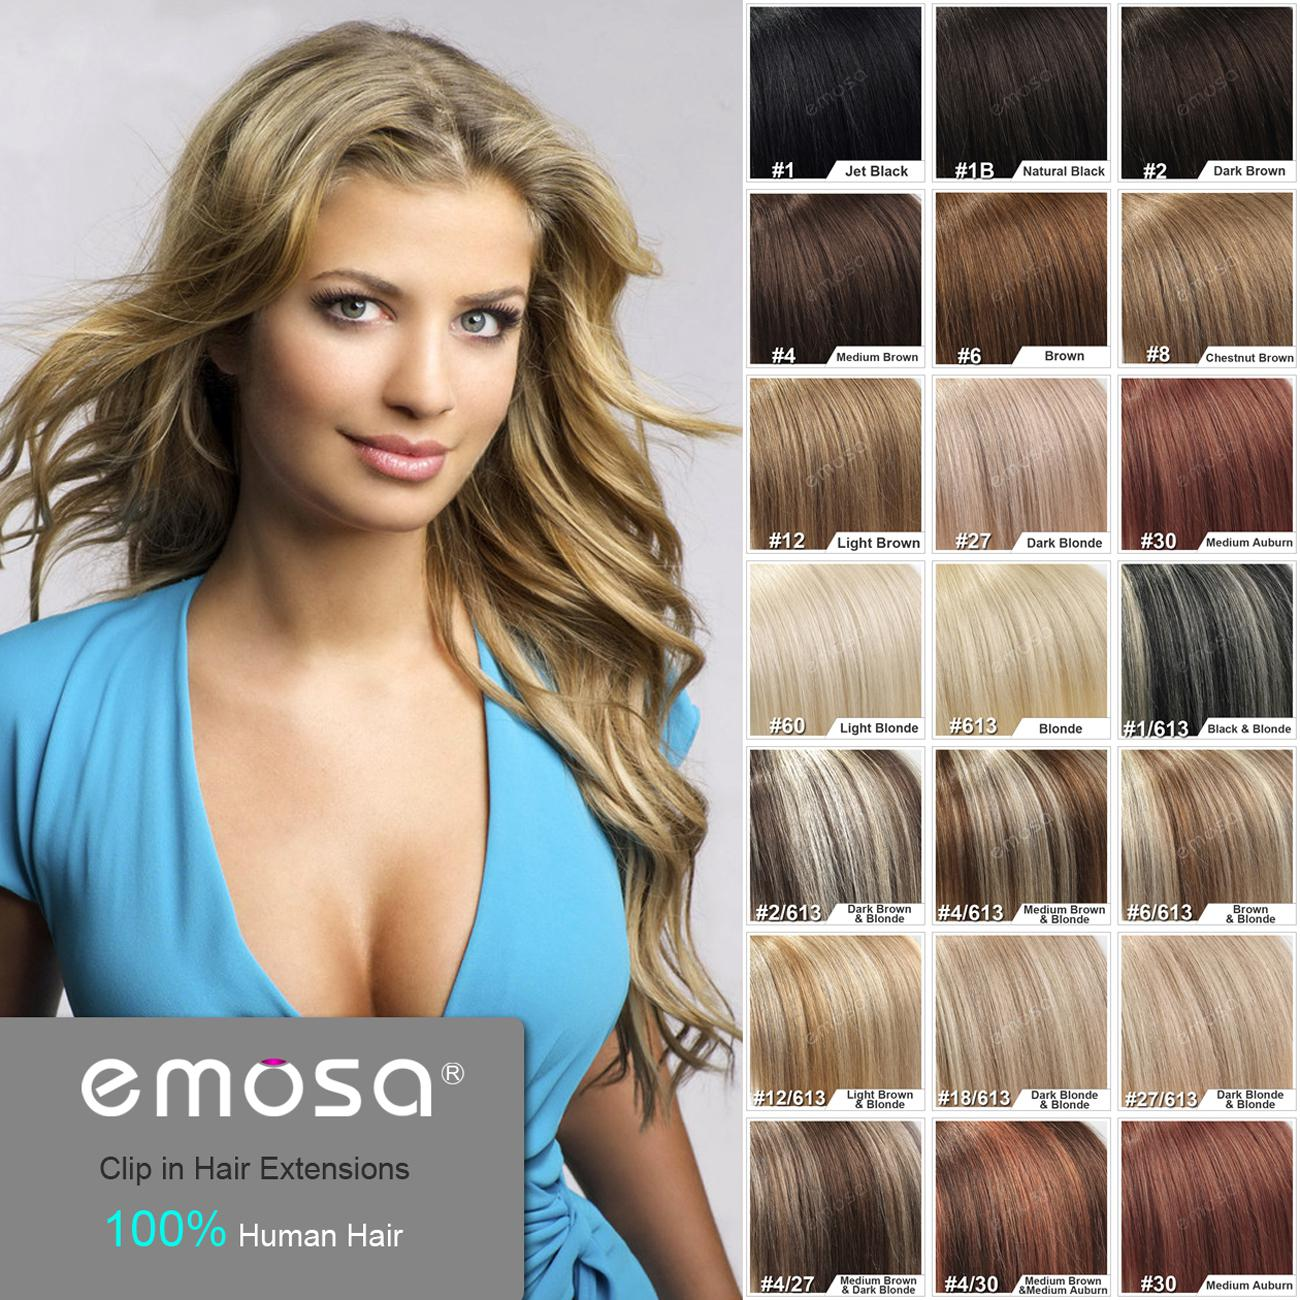 Aliexpress clip in hair extensions reviews images hair extension aliexpress clip in hair extensions reviews more aliexpress clip in hair extensions reviews in spain pmusecretfo pmusecretfo Images